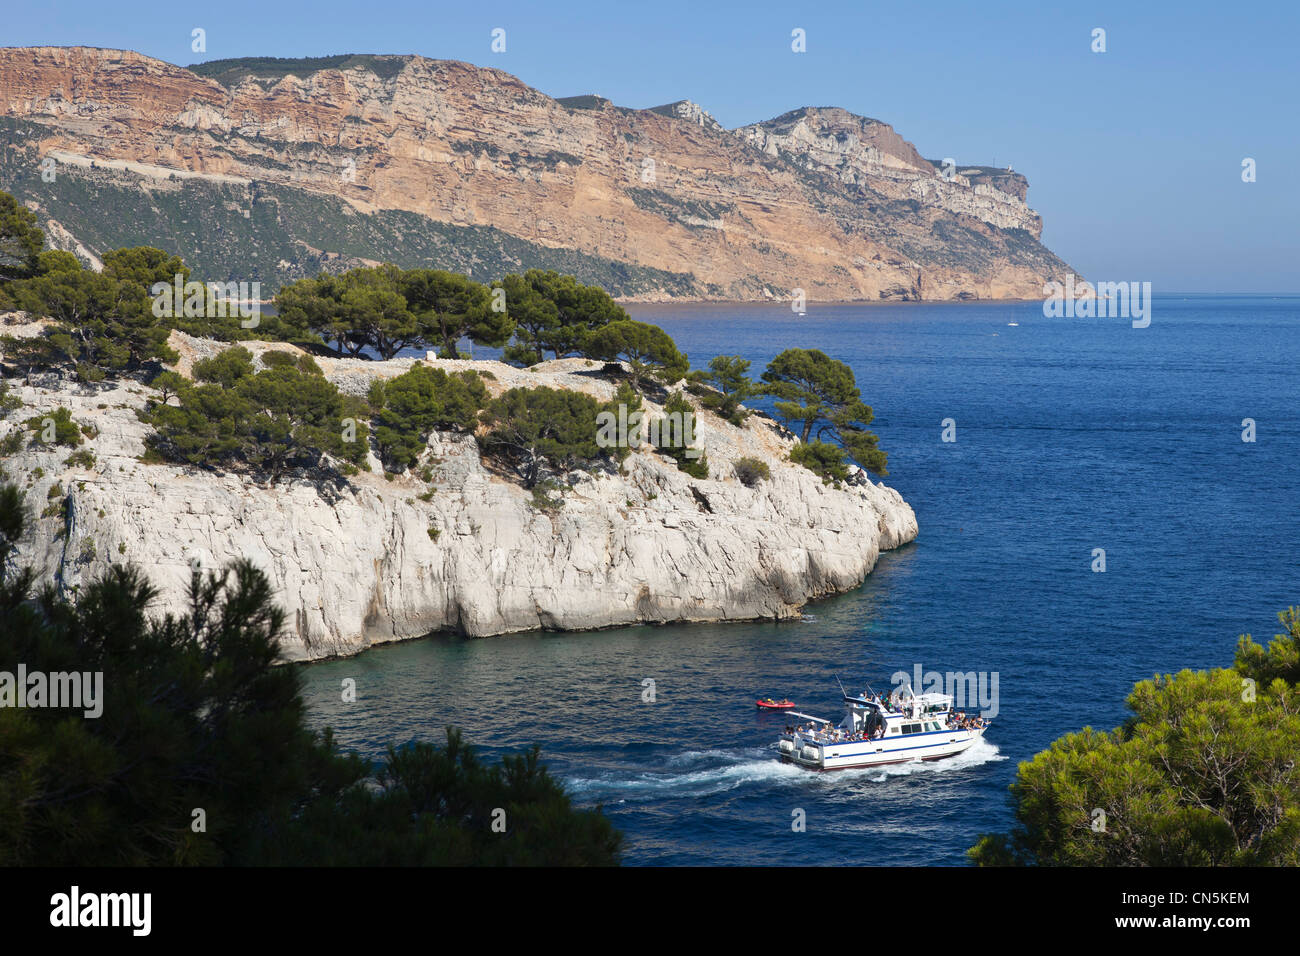 France, Bouches du Rhone, Cassis, Port Pin creek (calanque) - Stock Image